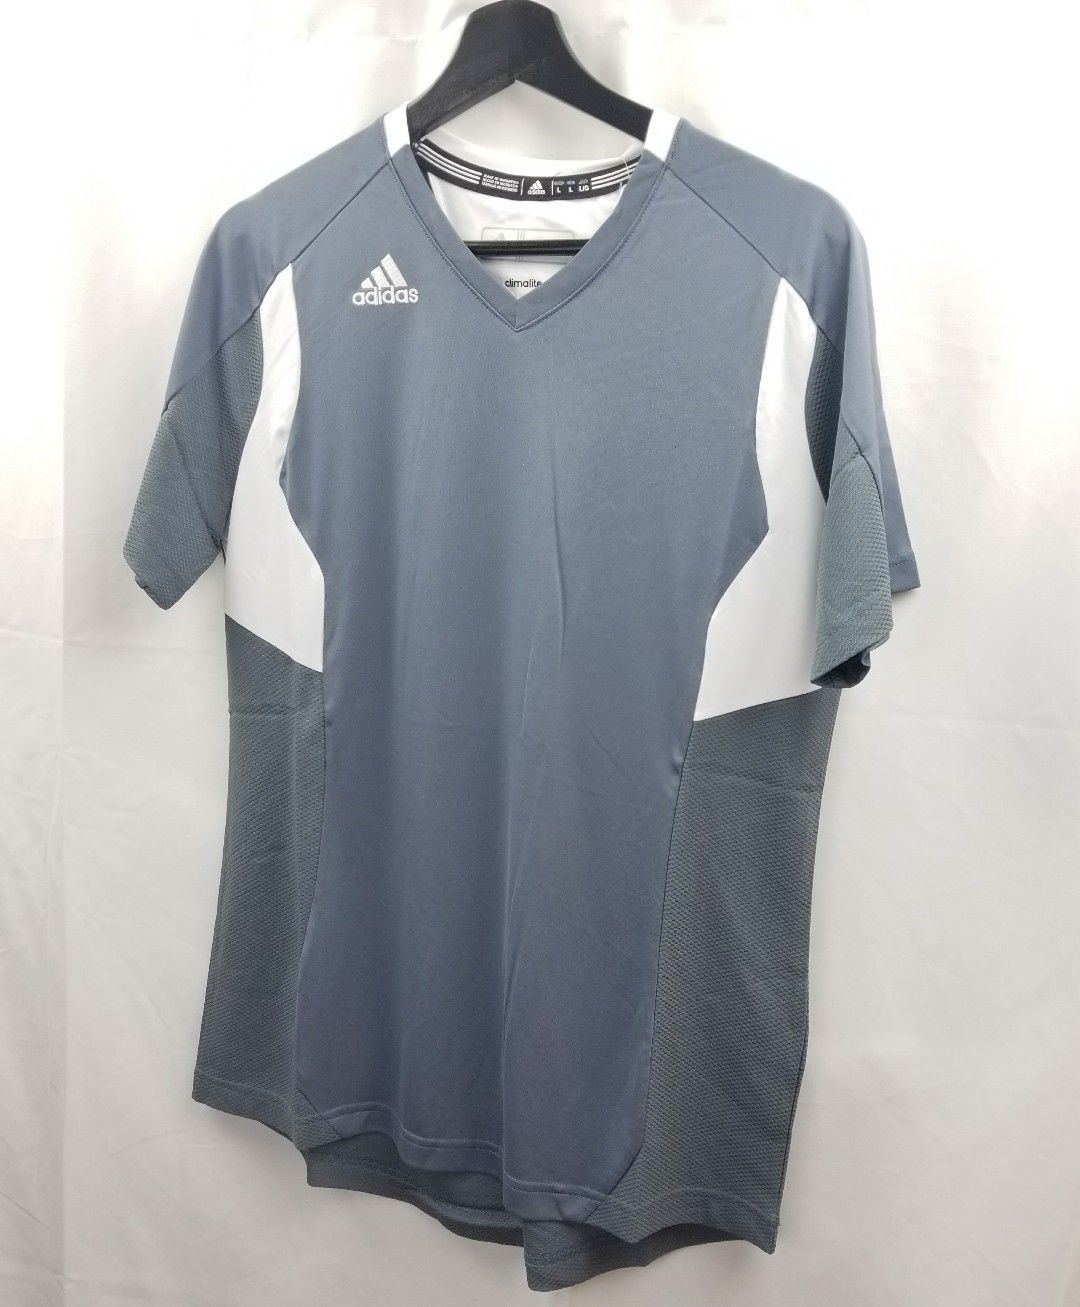 25d093770a94 Adidas womens climalite utility shirt v neck and similar items. S l1600